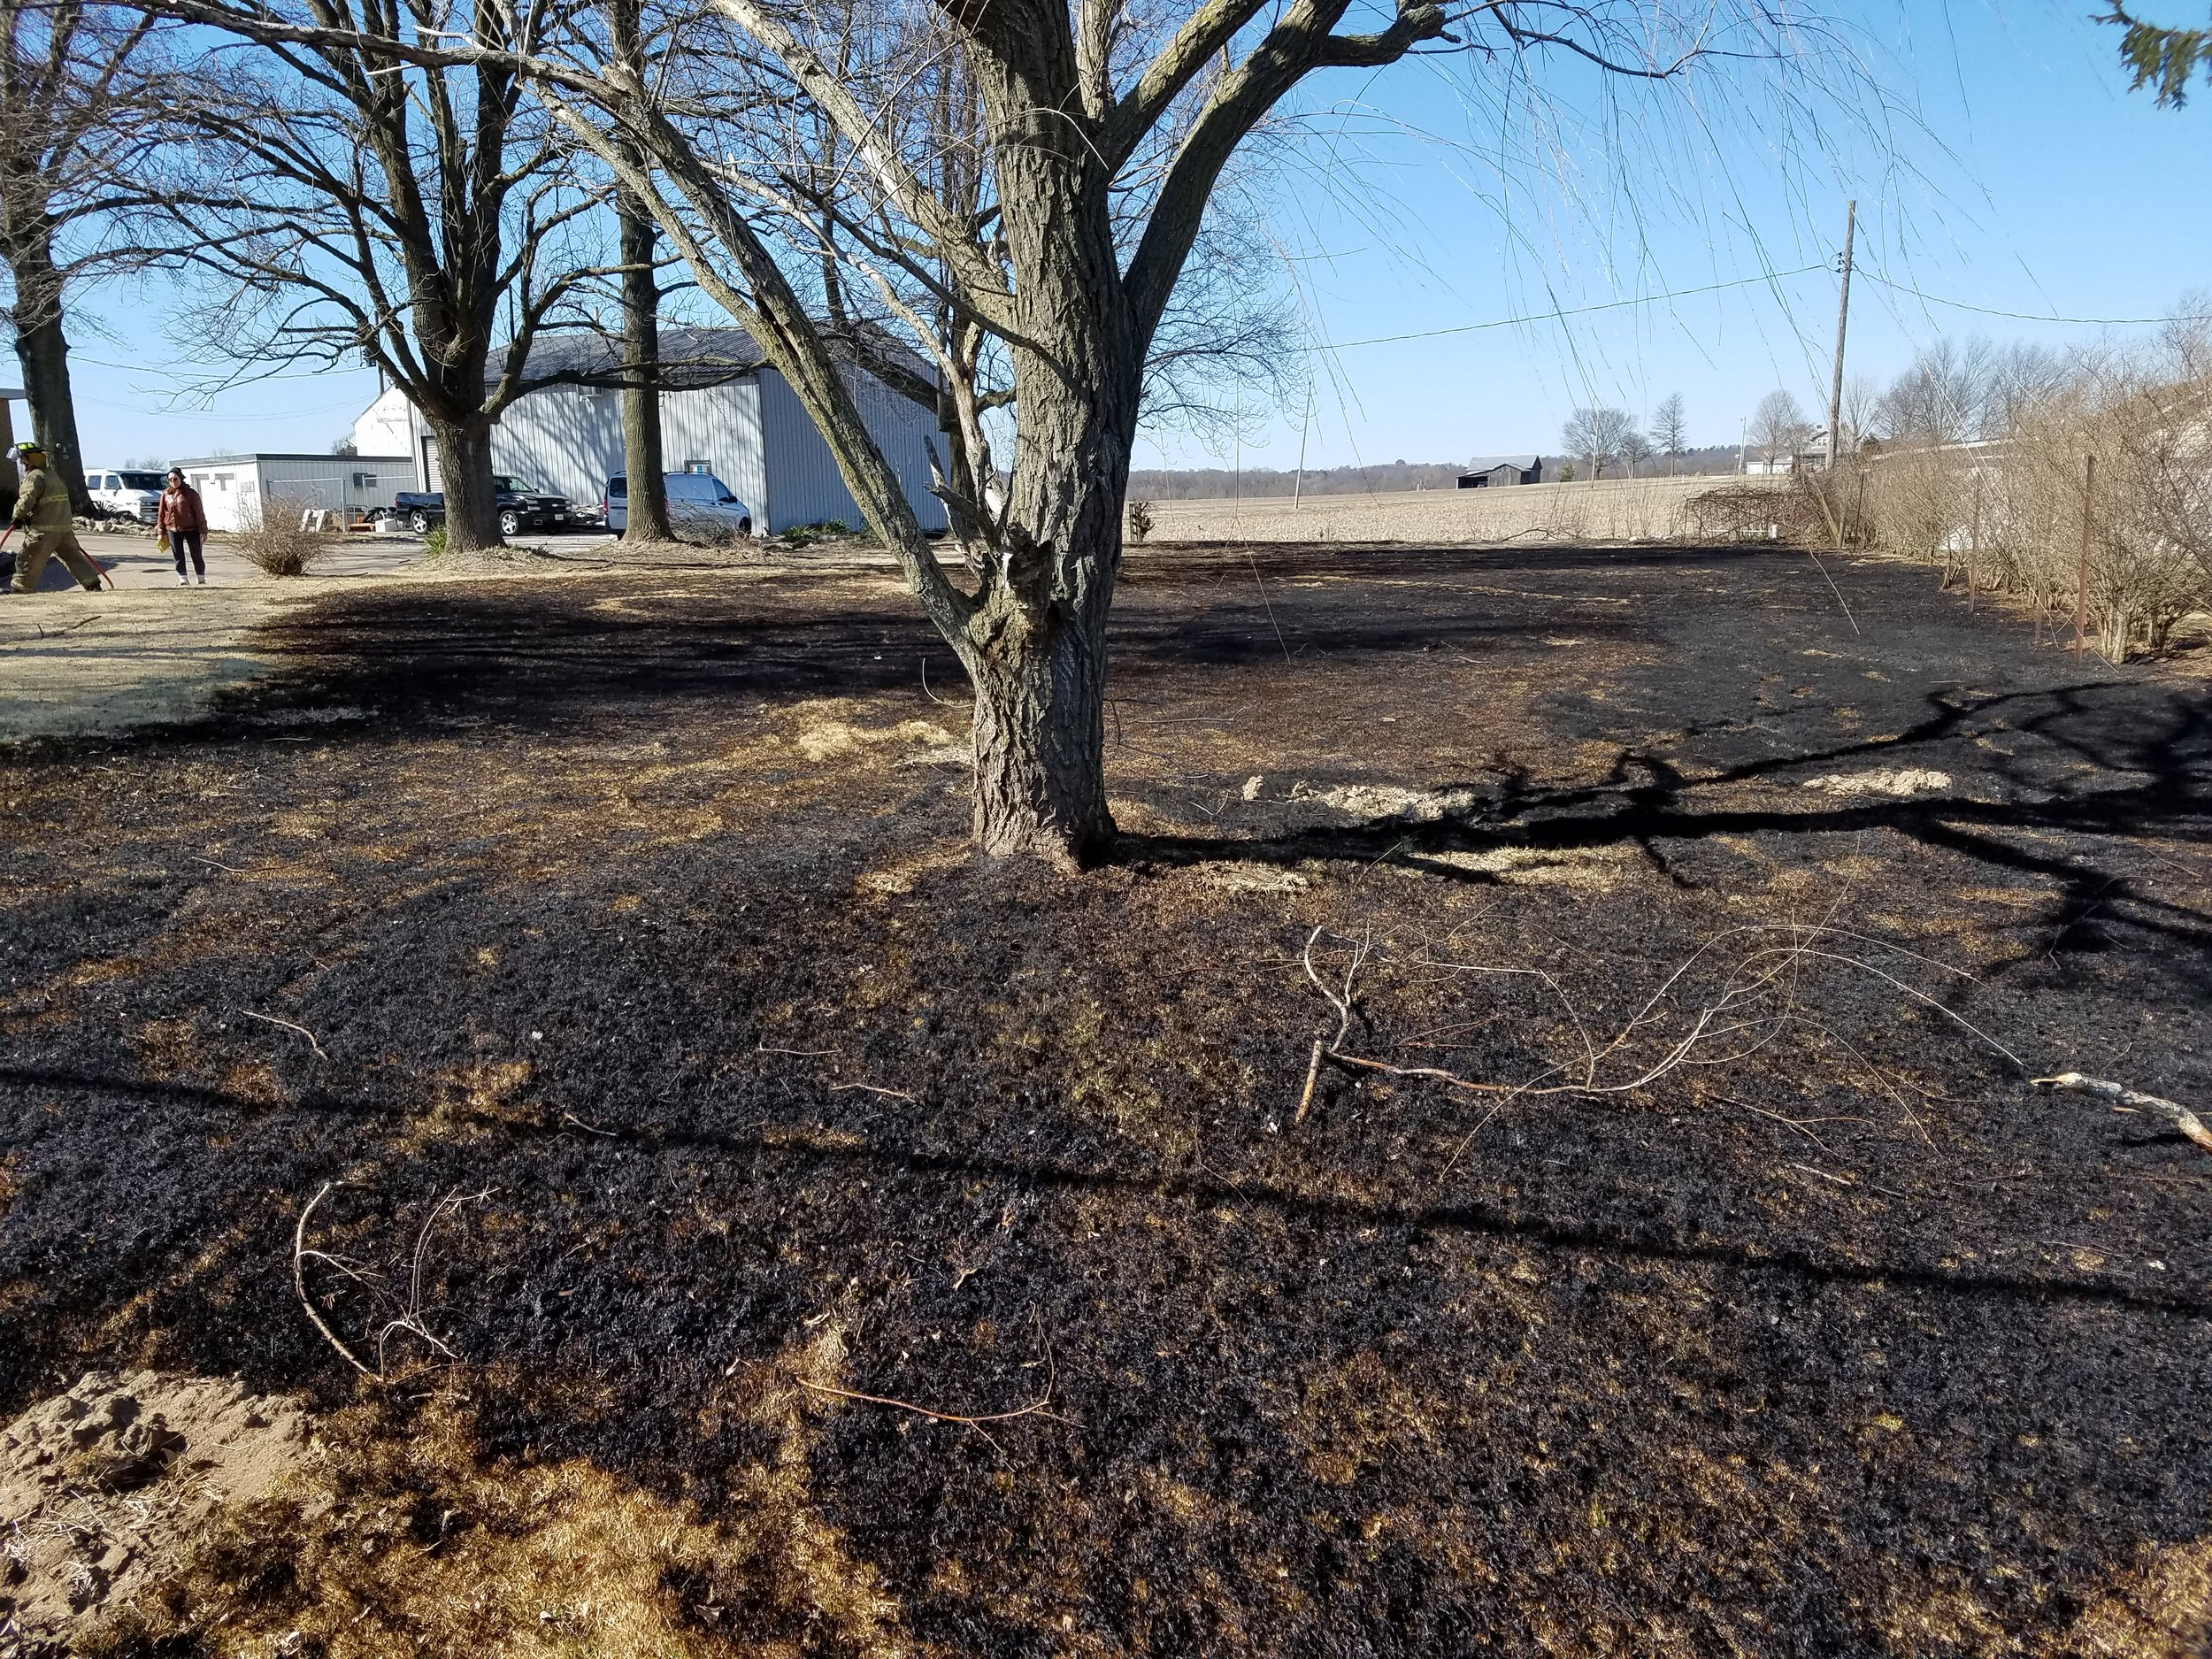 On 03/16/19, East Side Firefighters responded for a brush fire. The fire was mostly extinguished by a group of citizens driving by. The fire was started by a resident burning yard waste on a windy day.